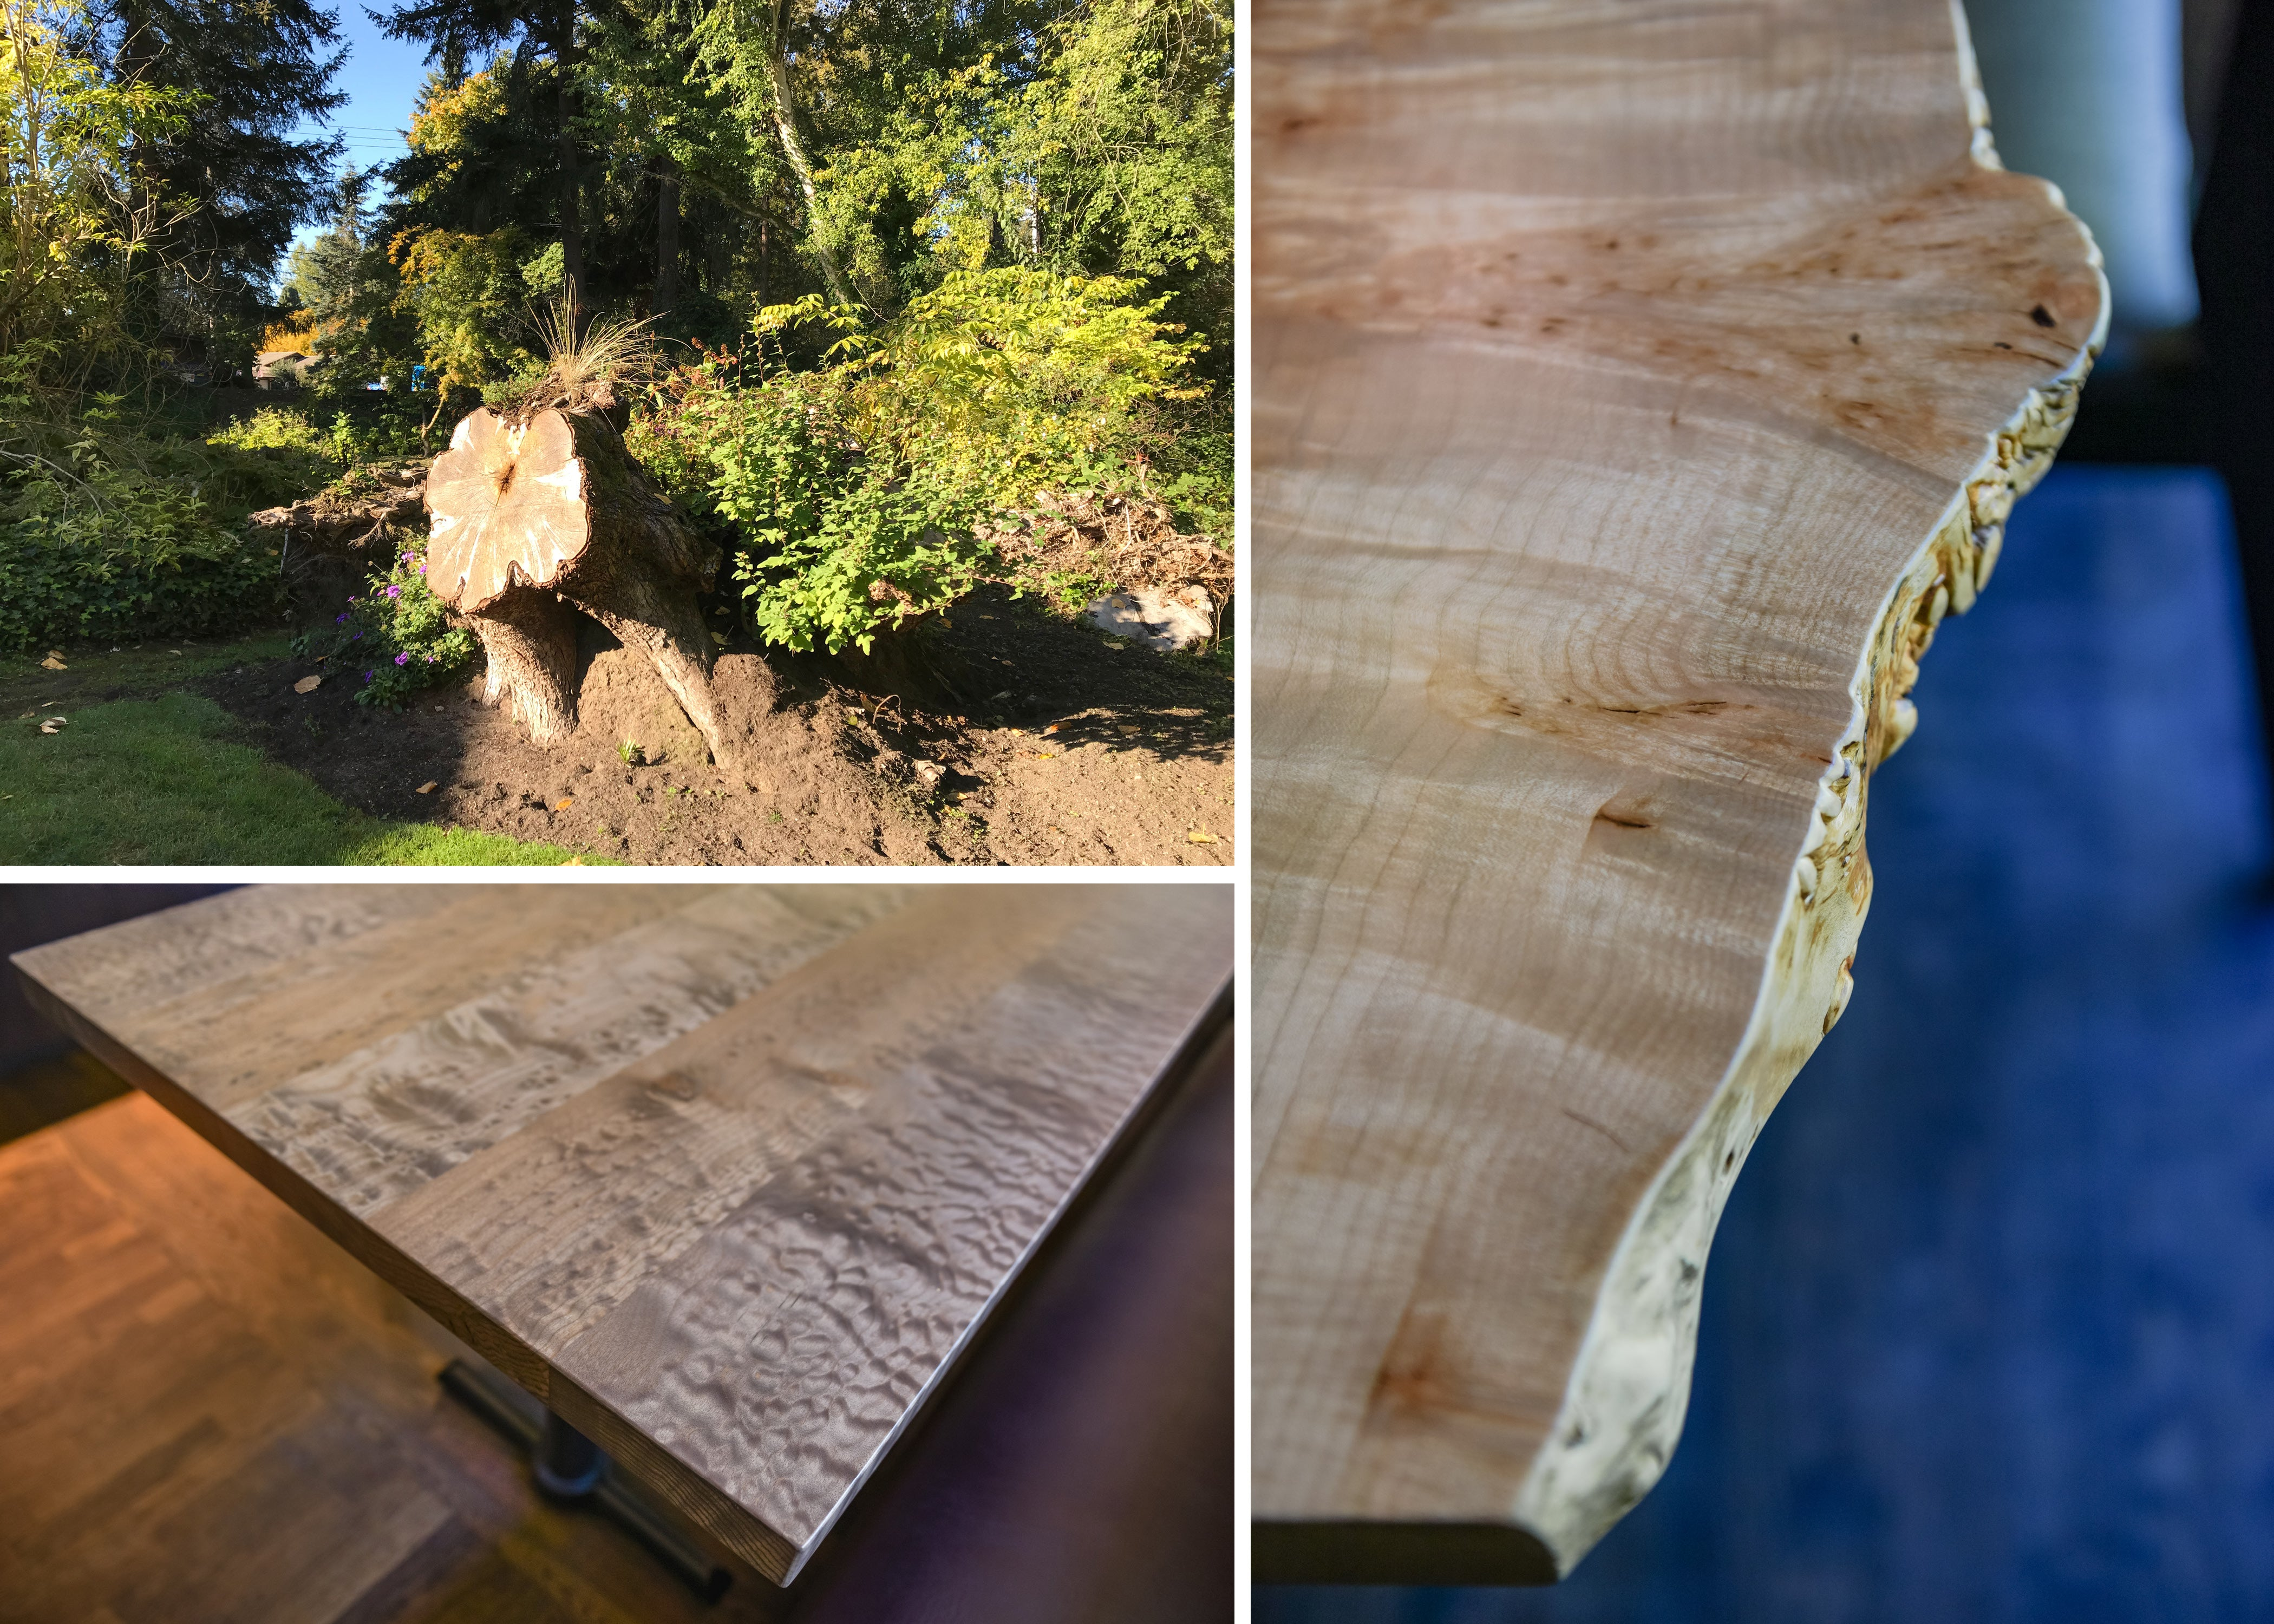 Site salvage reuse maple tree to table